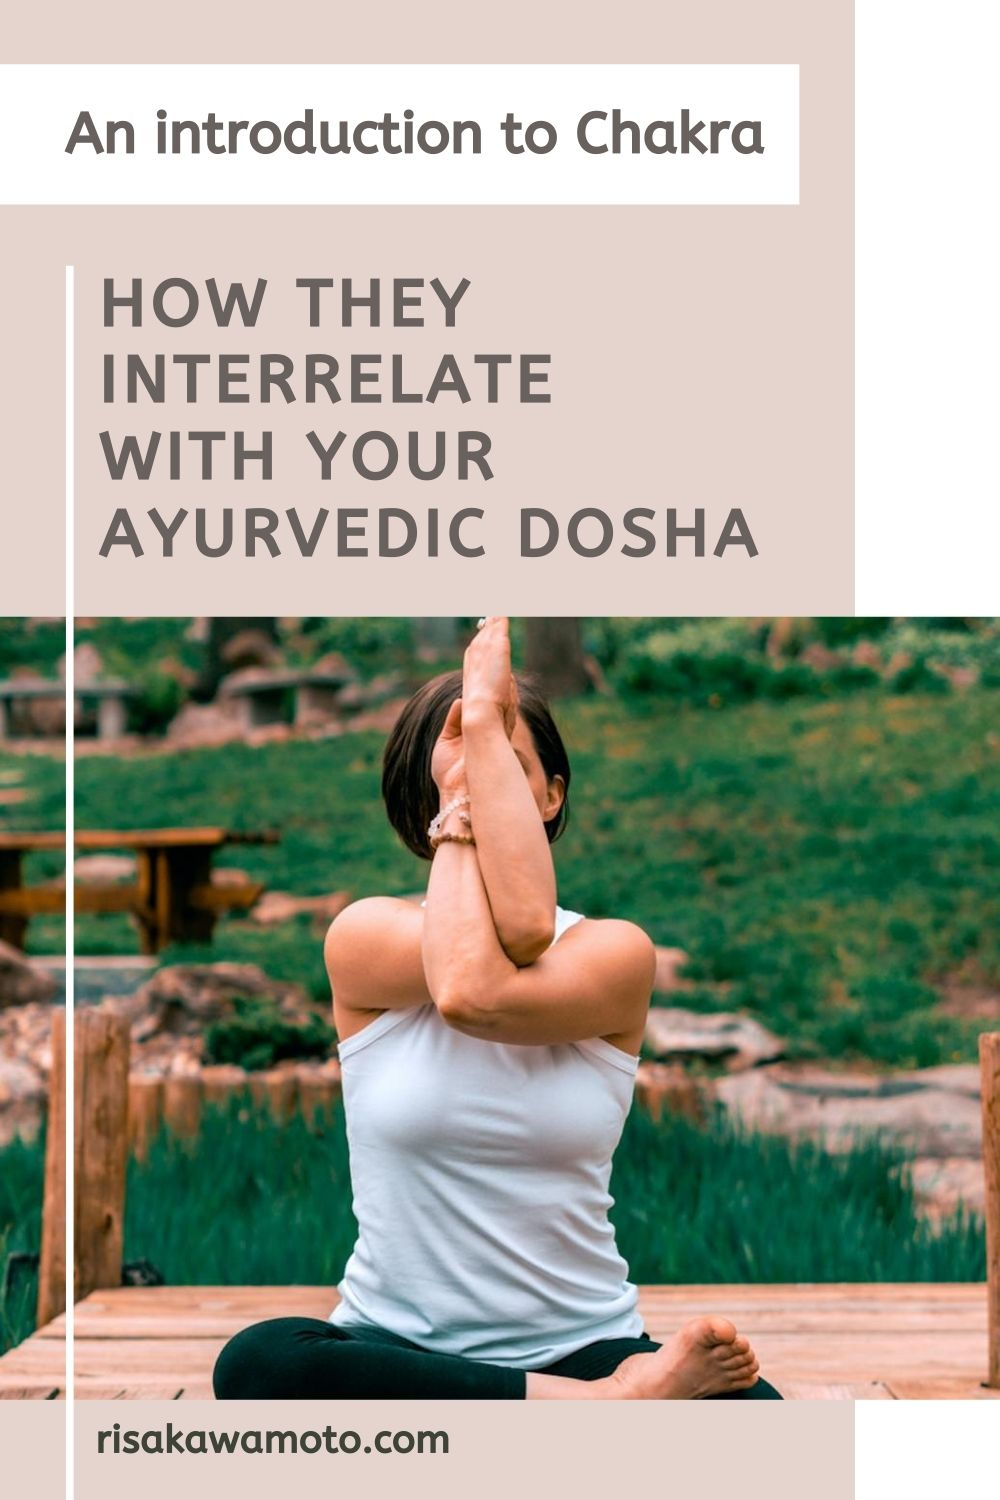 An introduction to Chakra and How They Interrelate with Your Ayurvedic Dosha